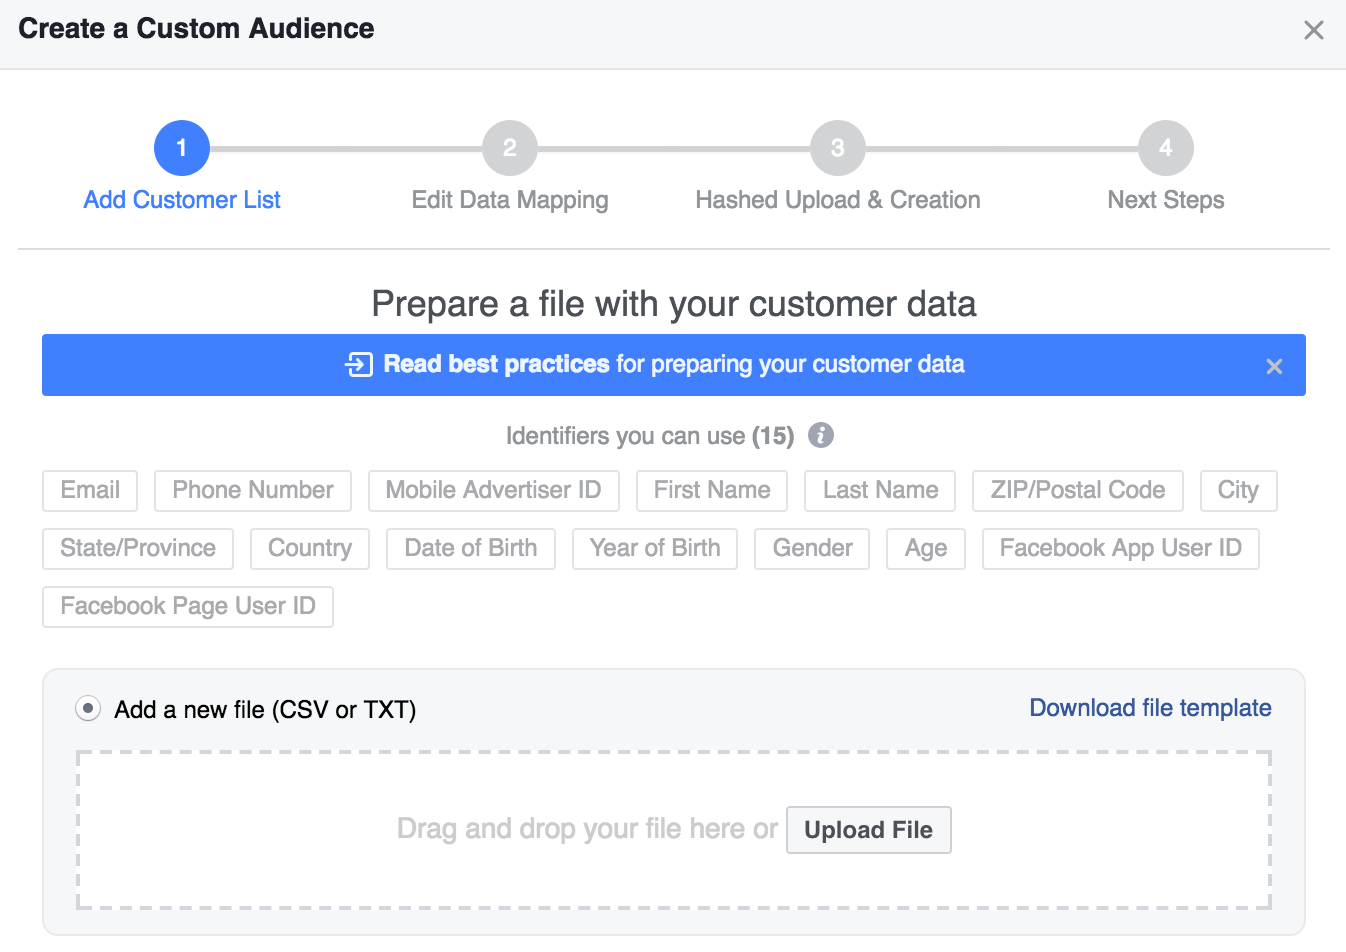 Creating a custom audience can help your demand generation strategy reach more people.